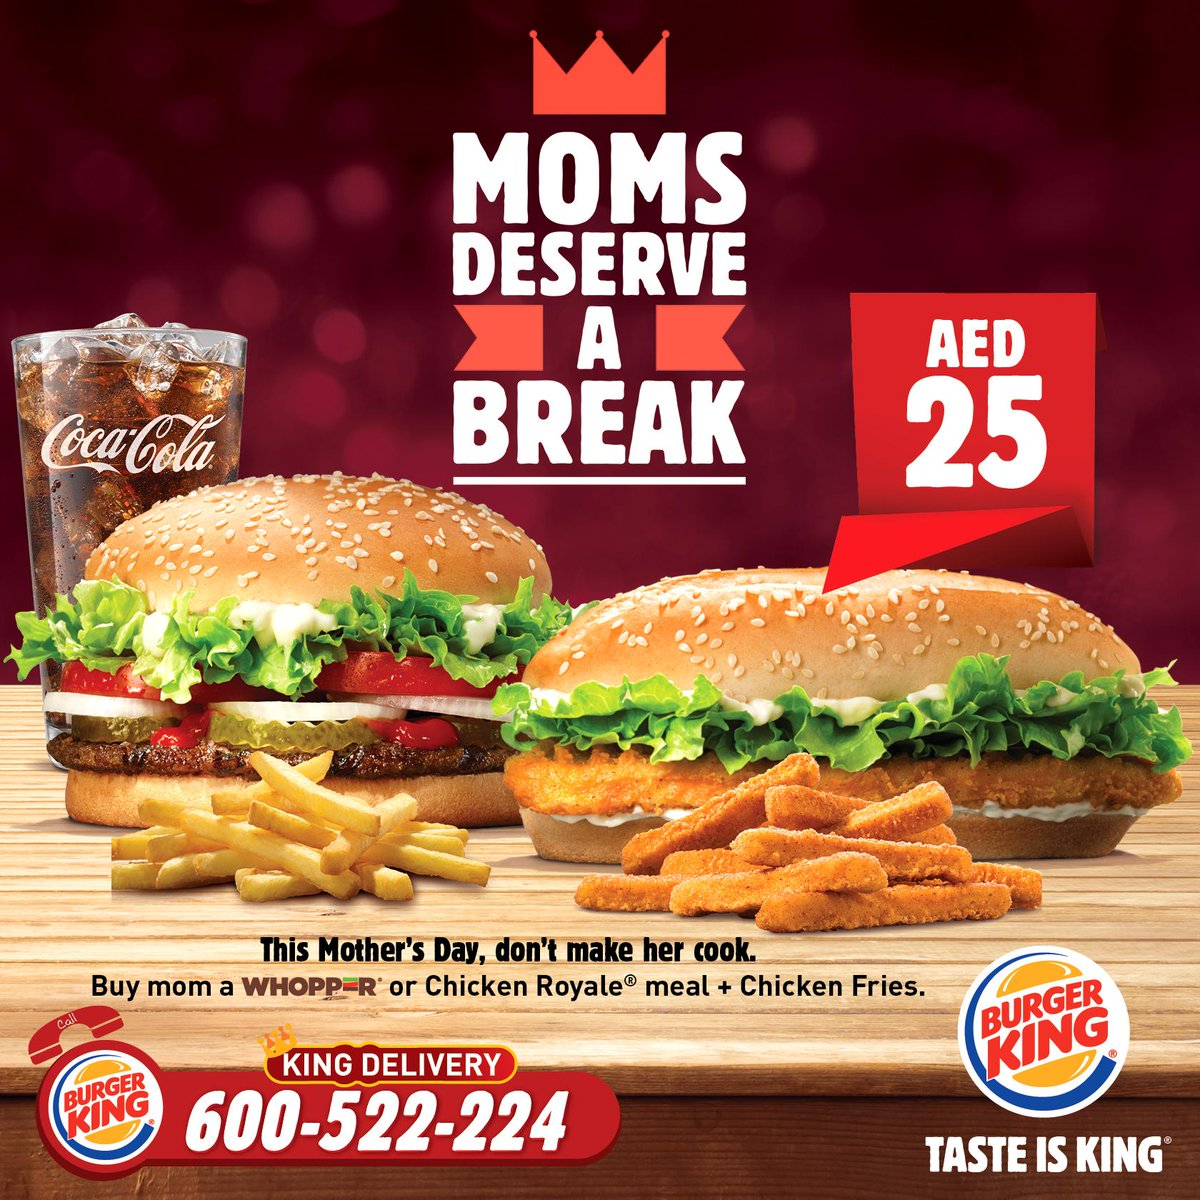 Burger King already has one entry in the ongoing fast food meal-deal war that focuses on one person — a 5 for $4 menu that includes a bacon cheeseburger, small fries, chicken nuggets, beverage.